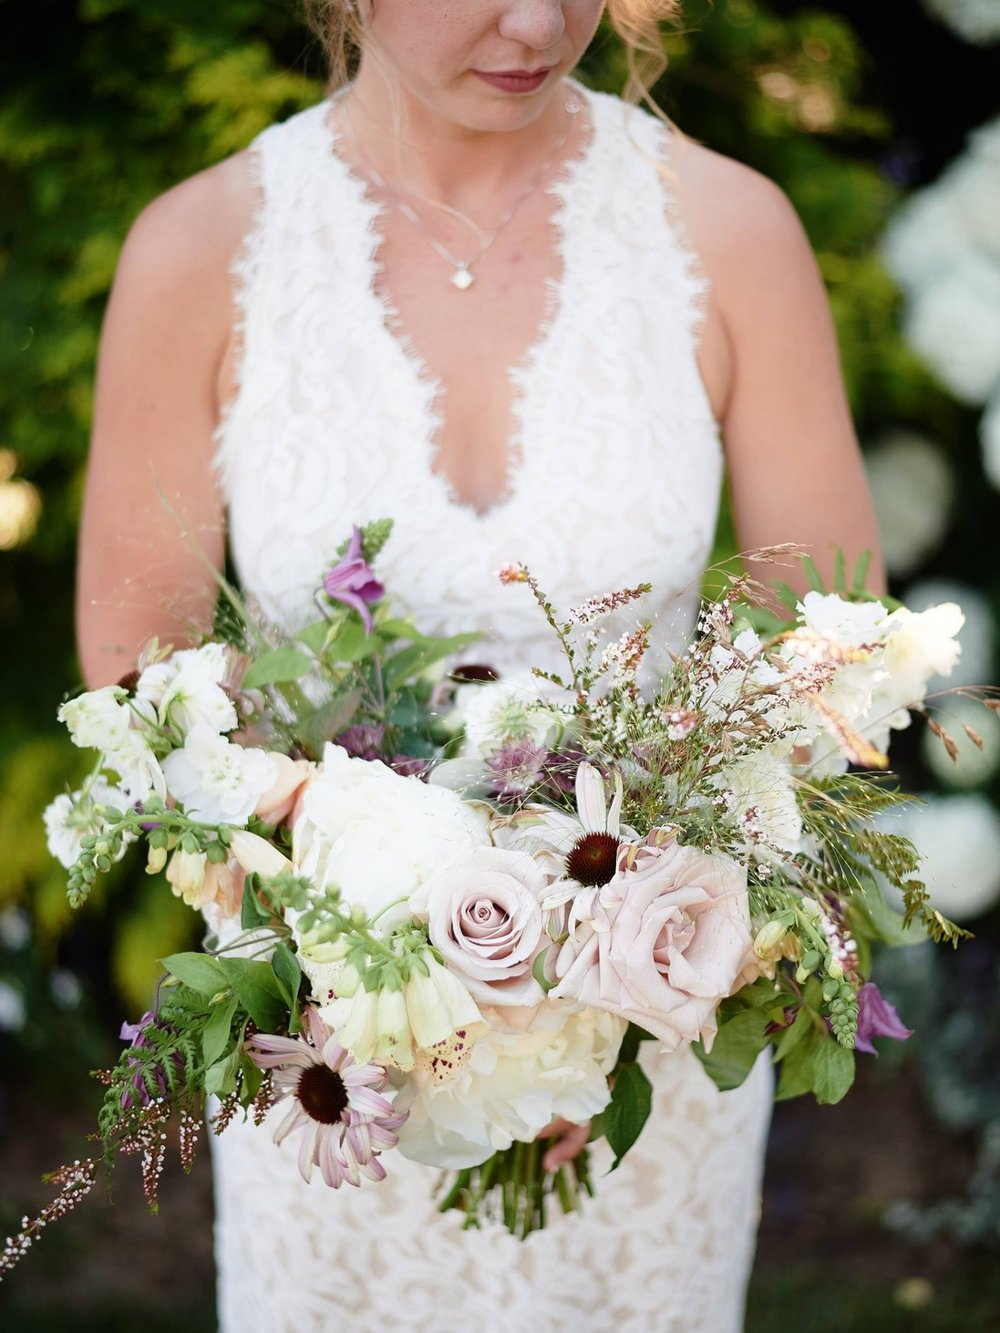 Organic bridal bouquet with greens, blush and lavender colors - Pearl Weddings & Events